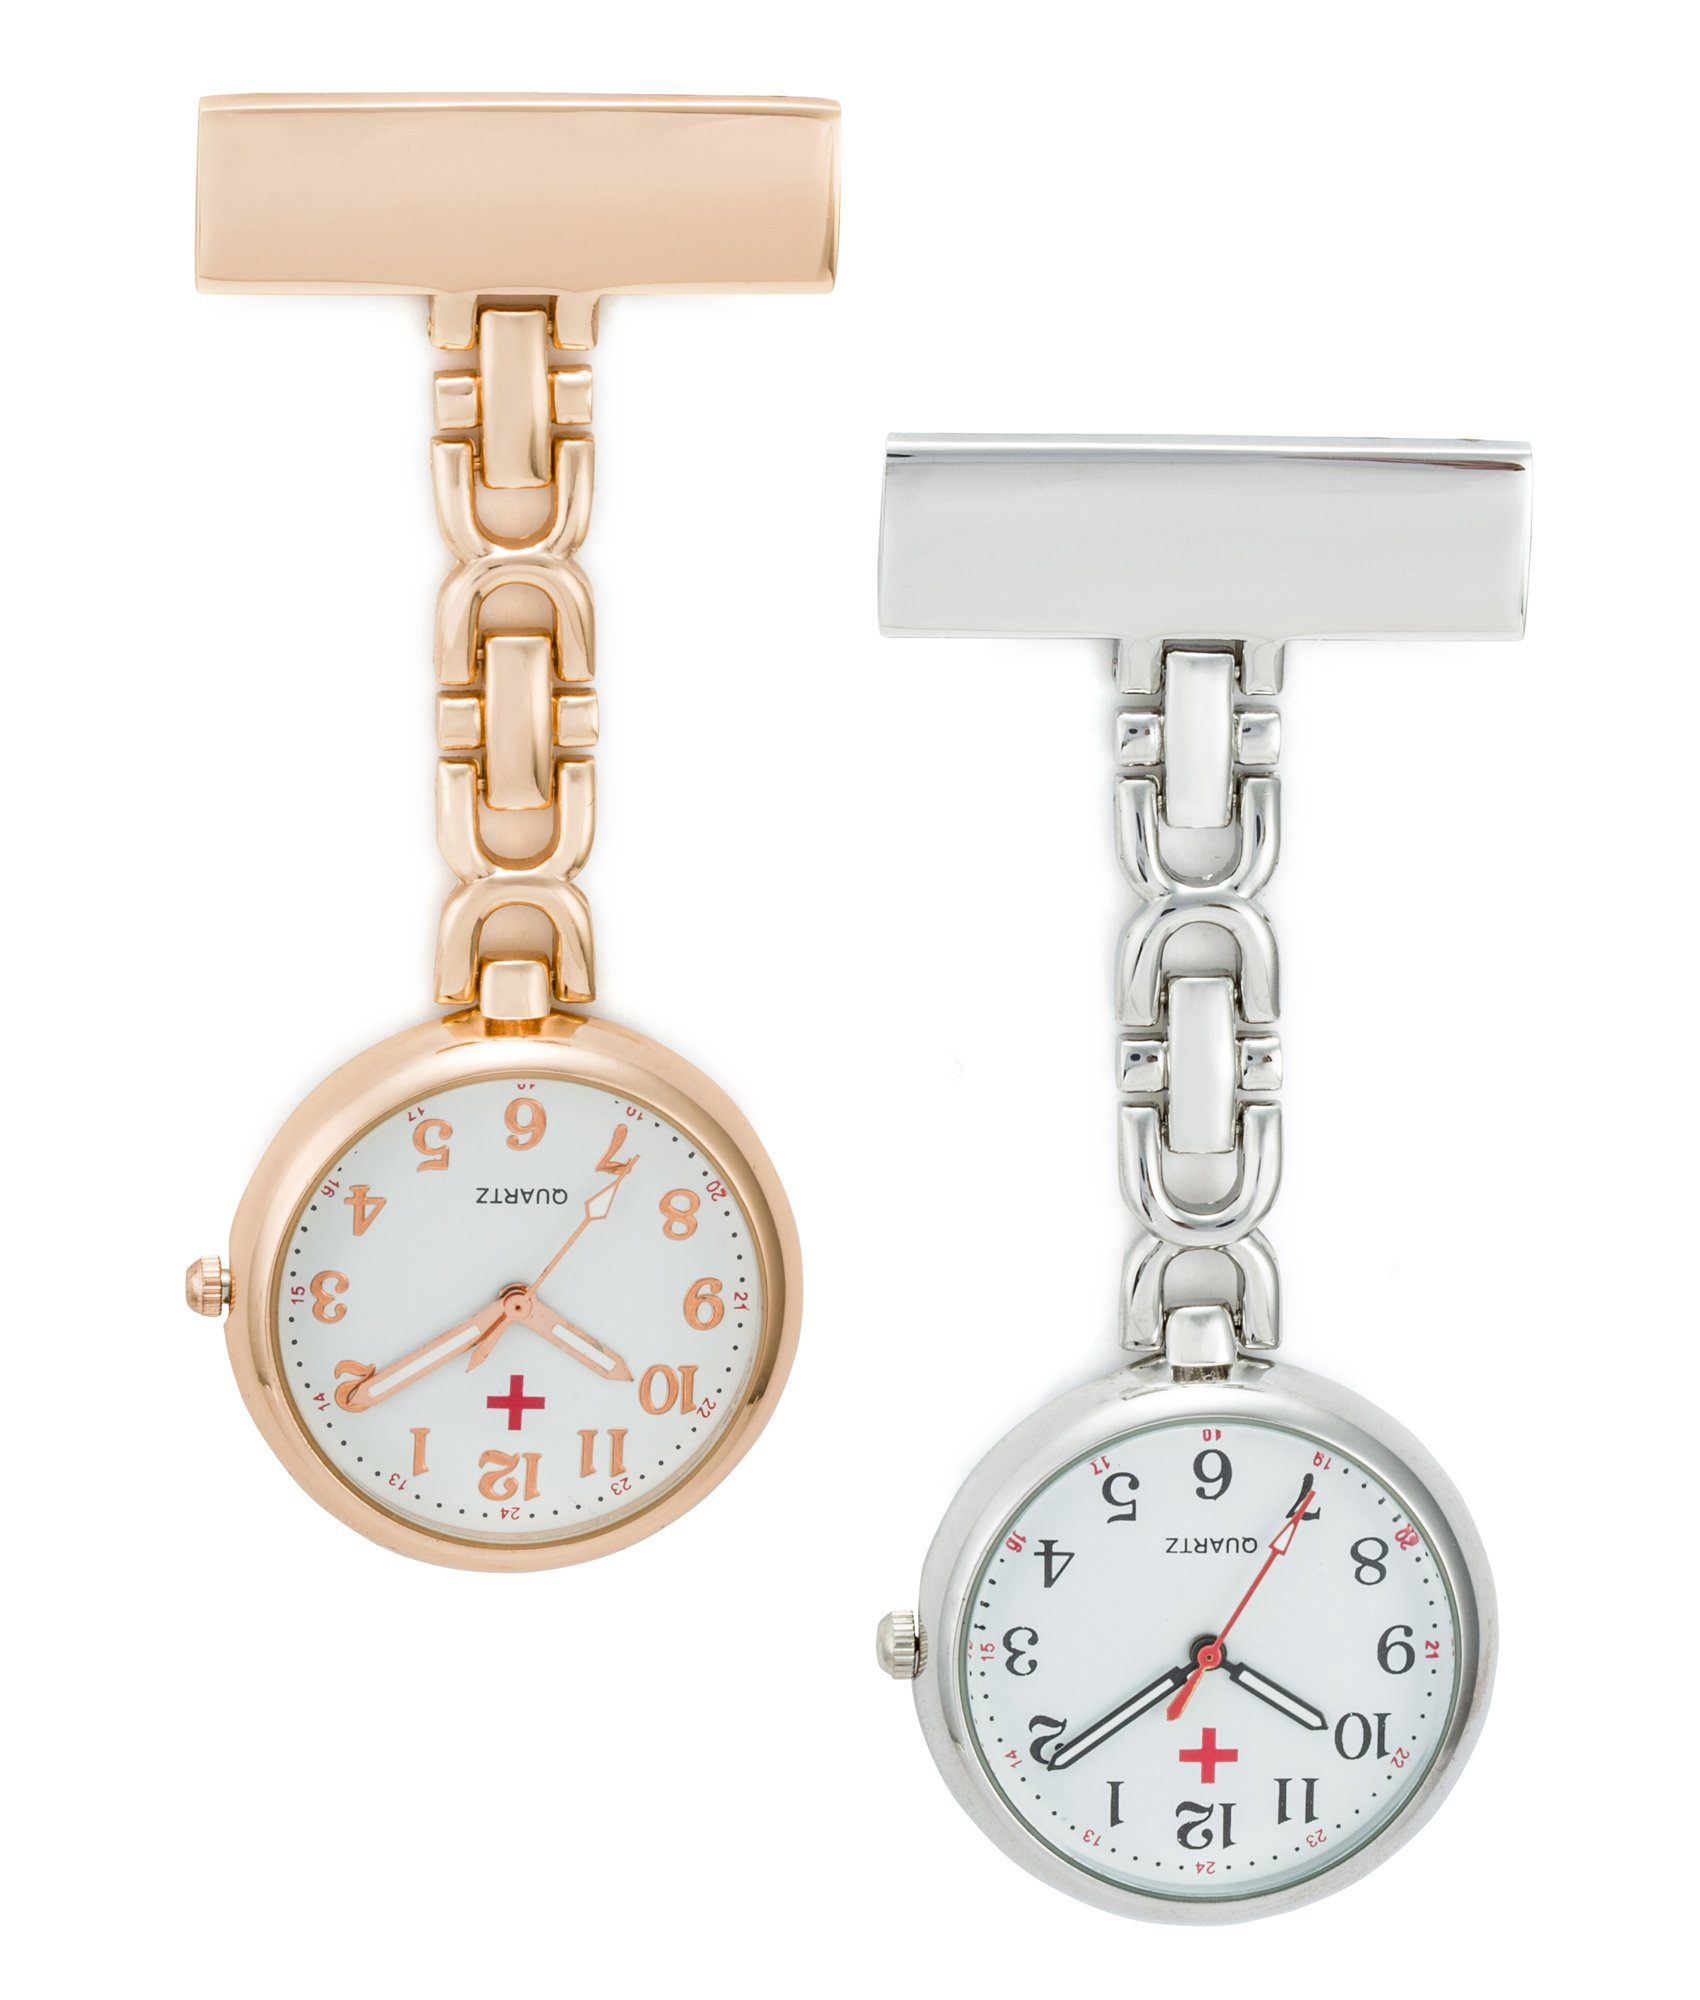 SEWOR Unisex Medical staff Hanging Pocket Watch 2pcs With Brand Leather Gift Box (Rose Gold & Sliver) by SEWOR (Image #1)